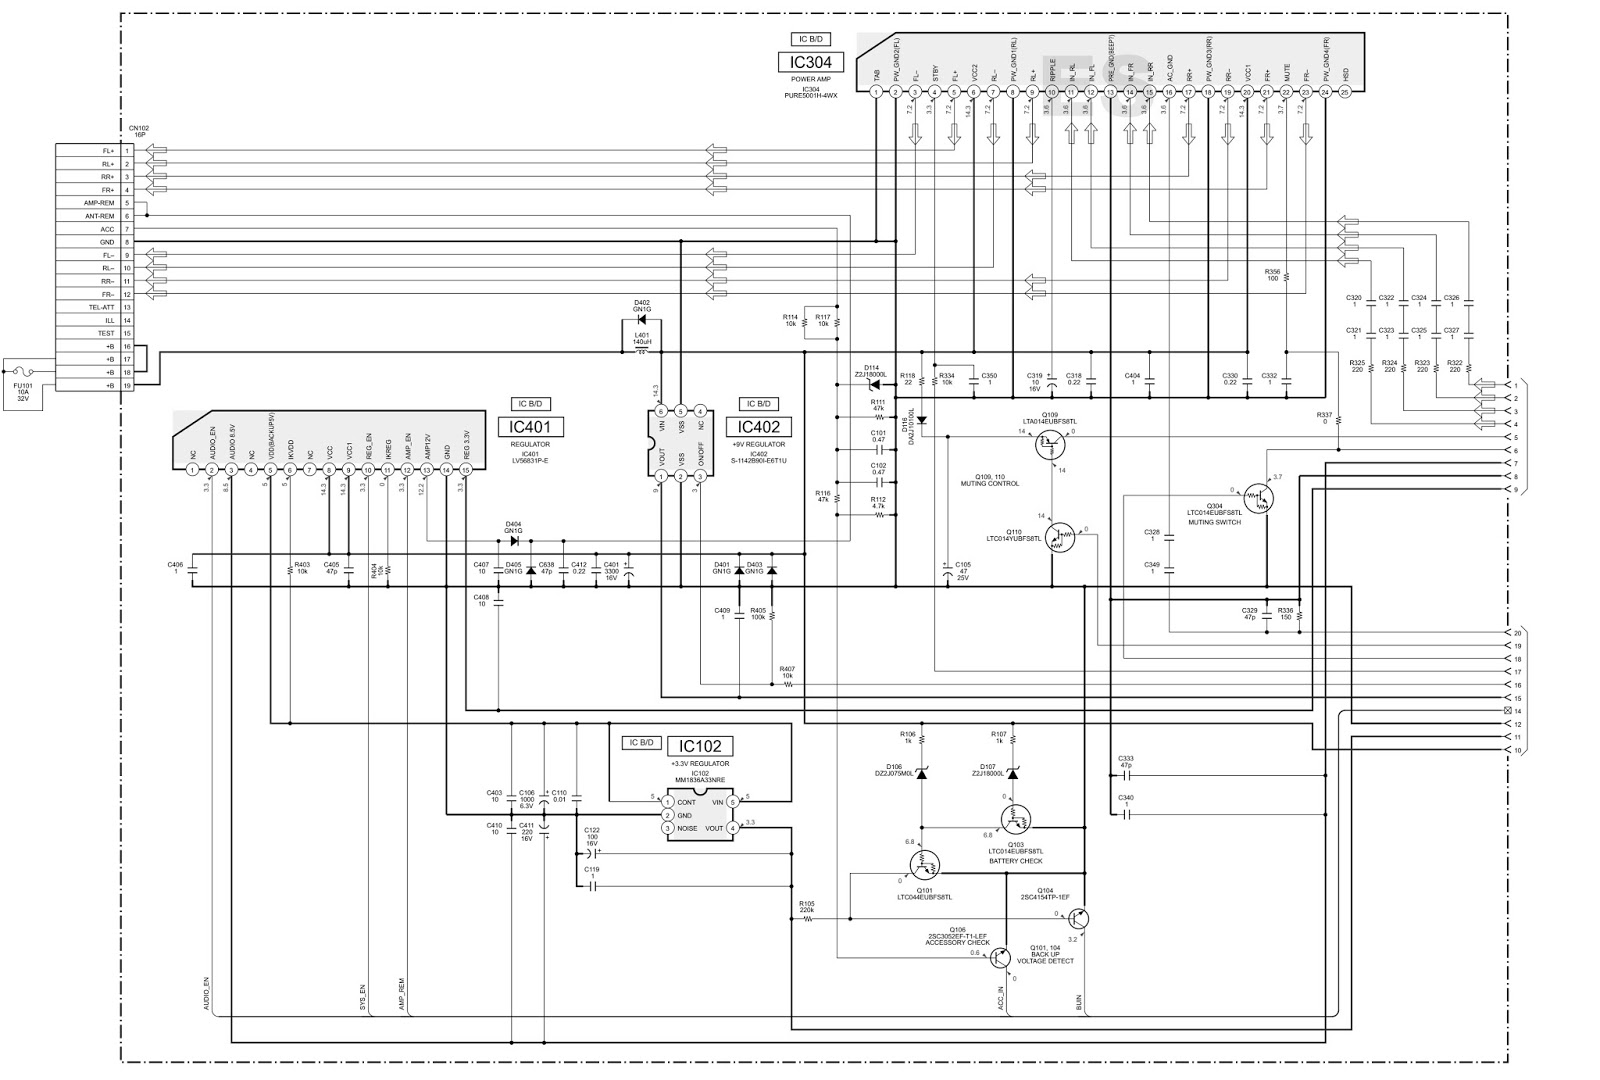 POWER AMPLIFIER CIRCUIT DIAGRAM. USING IC PURE5001H-4WX. CLICK ON THE IMAGE  TO ZOOM IN